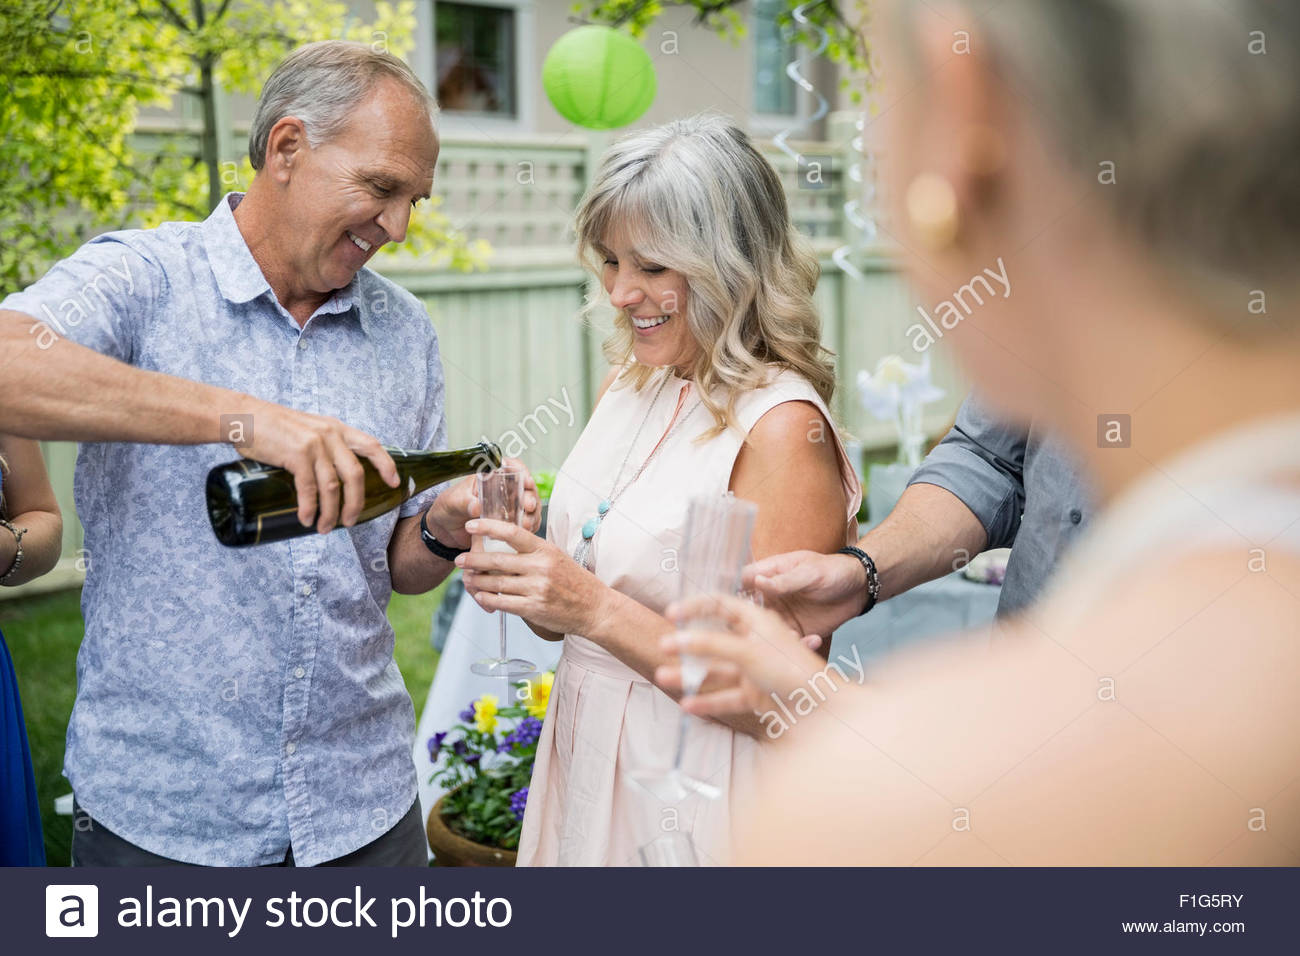 Husband pouring champagne for wife at garden party - Stock Image